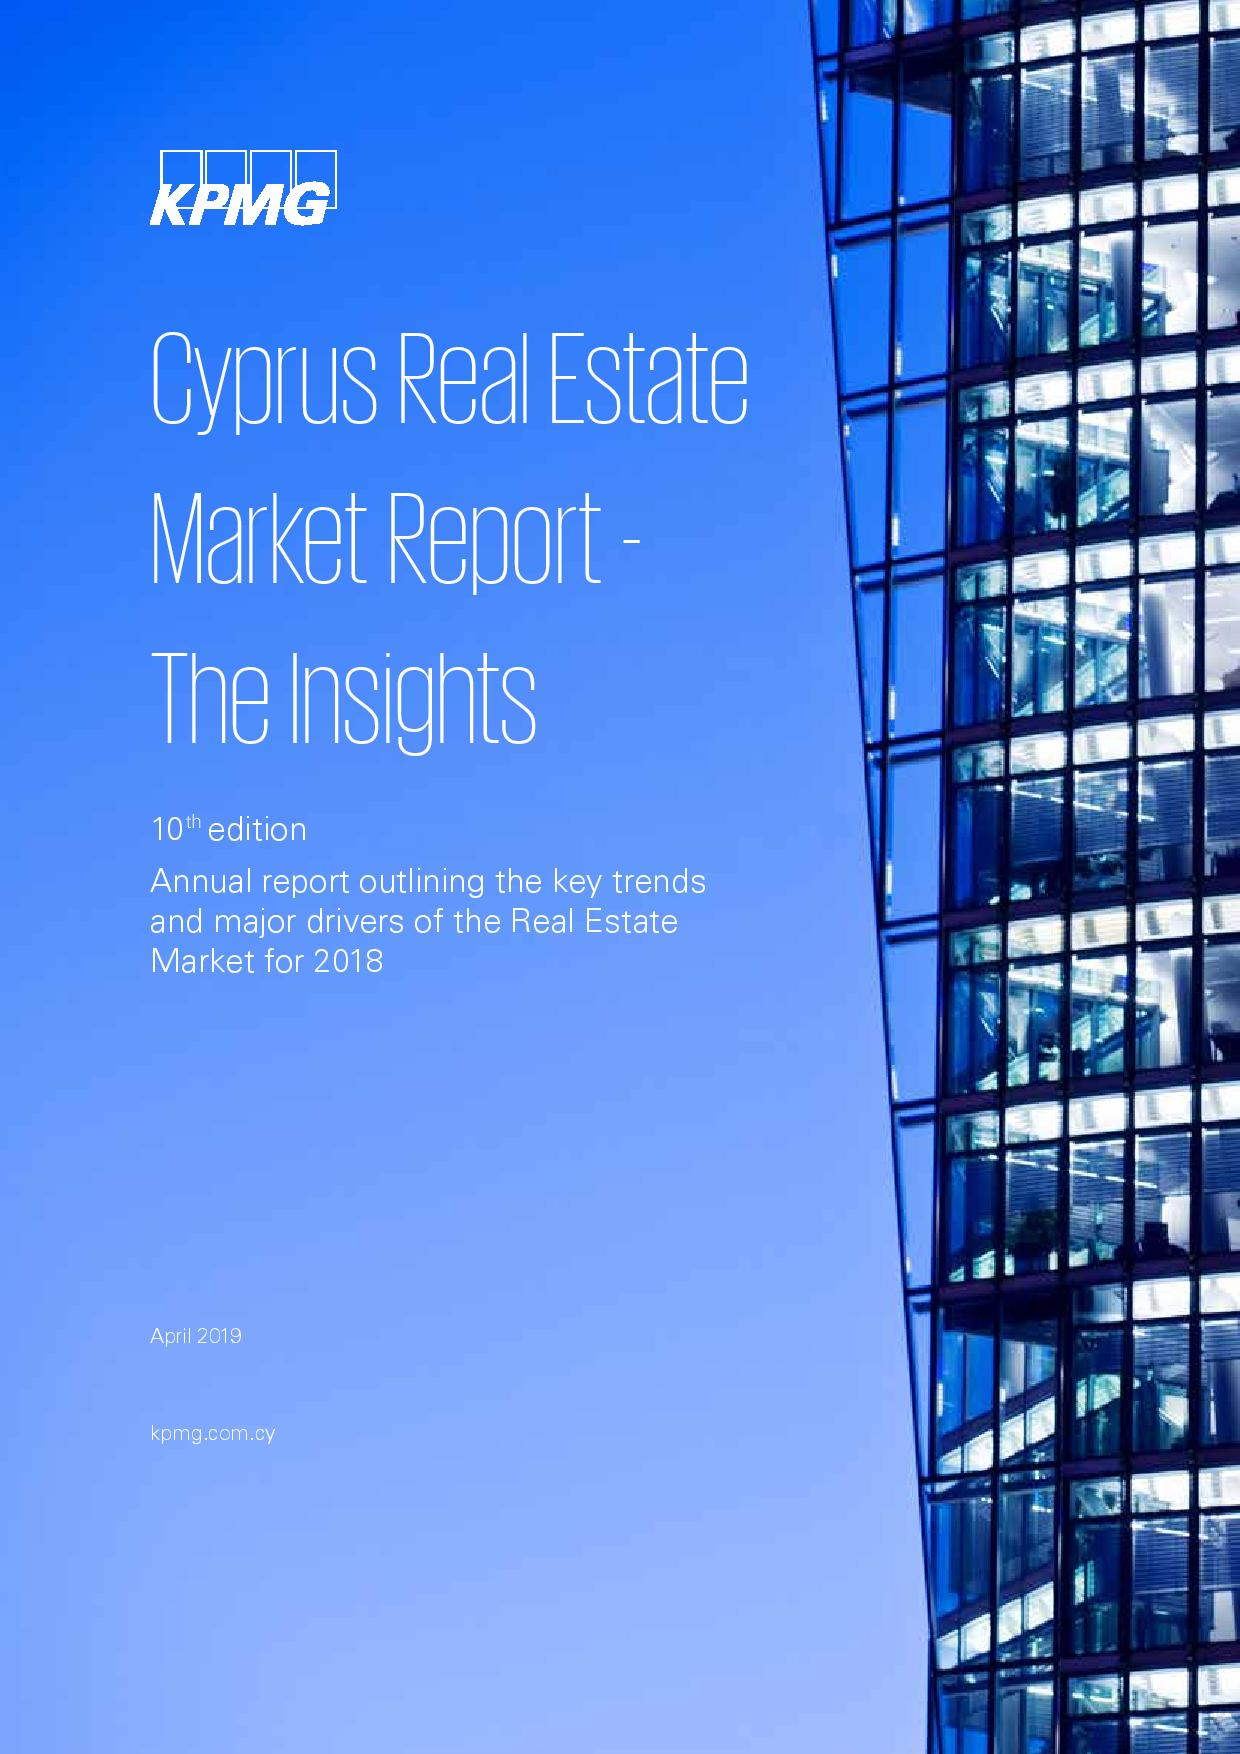 KPMG: Cyprus Real Estate Market Report - the insights